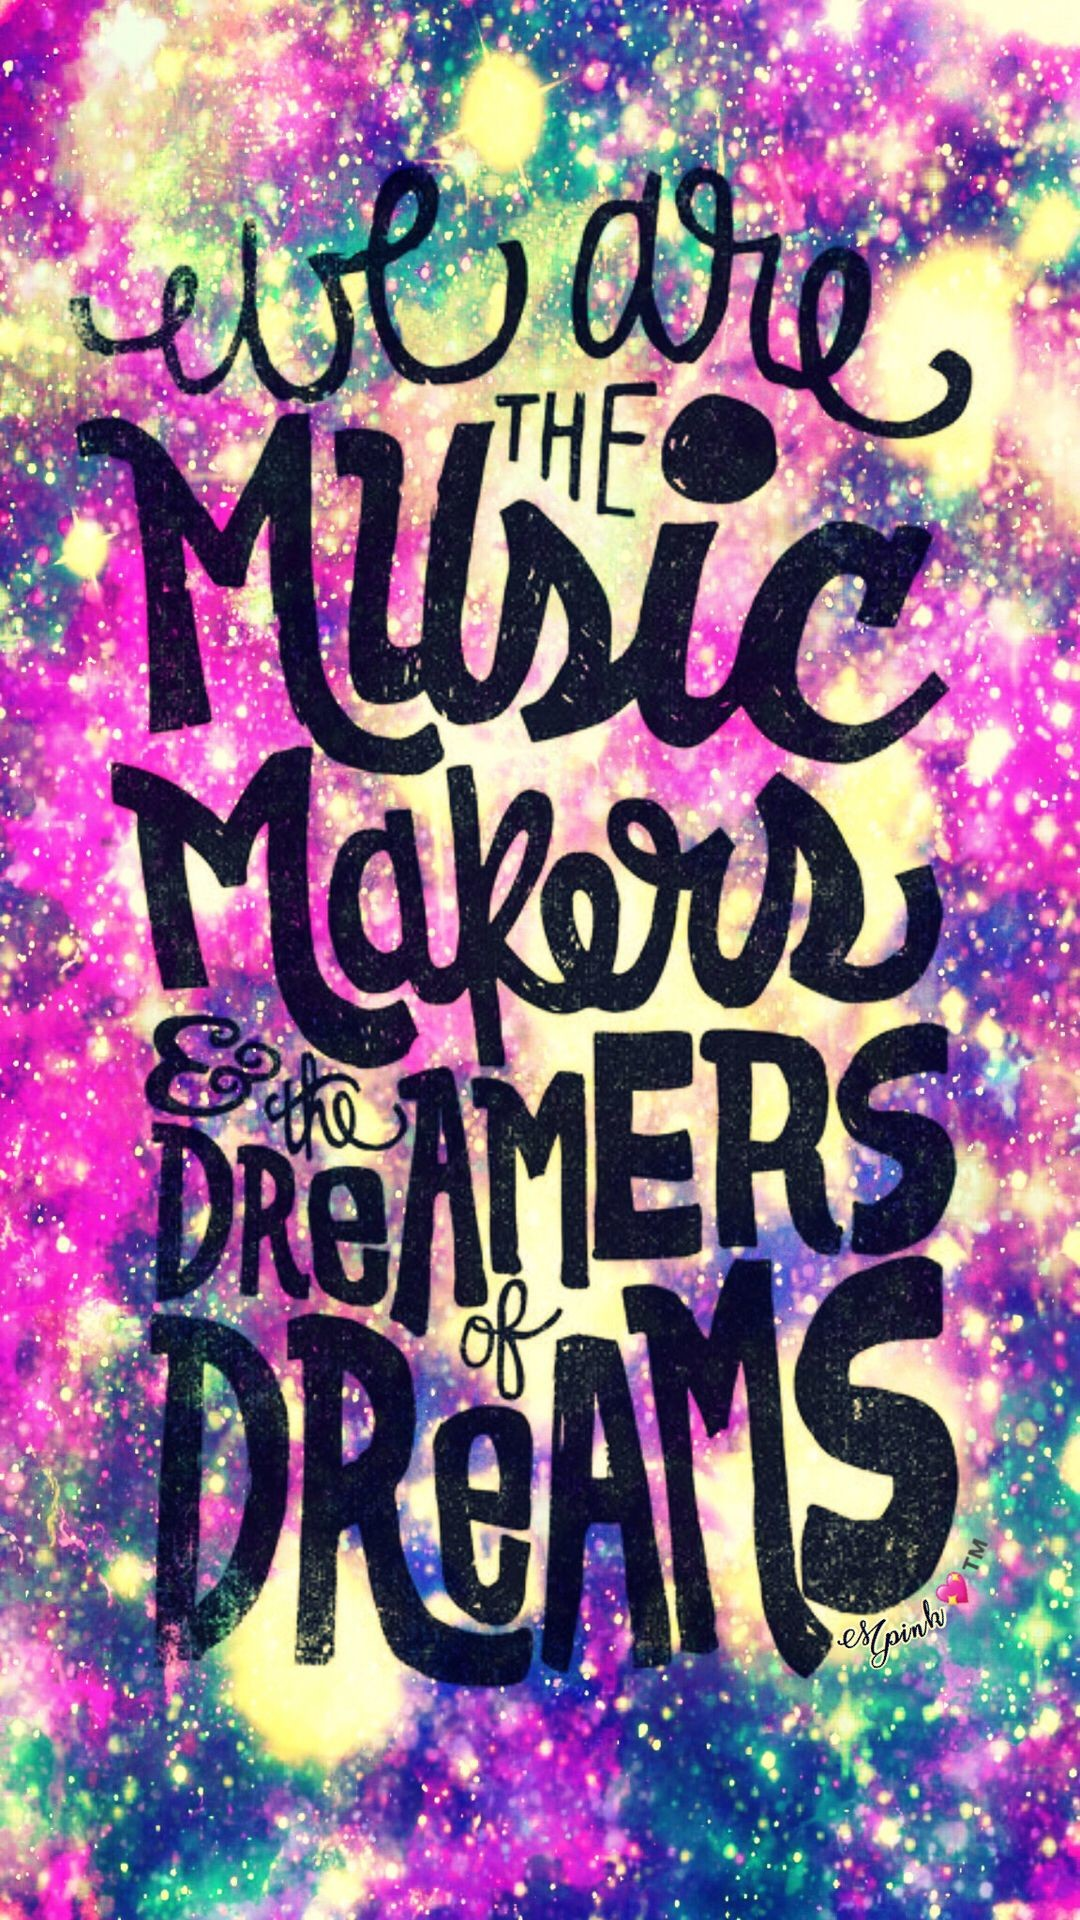 Res: 1080x1920, We Are The Music Makers Galaxy Wallpaper #androidwallpaper #iphonewallpaper  #wallpaper #galaxy #